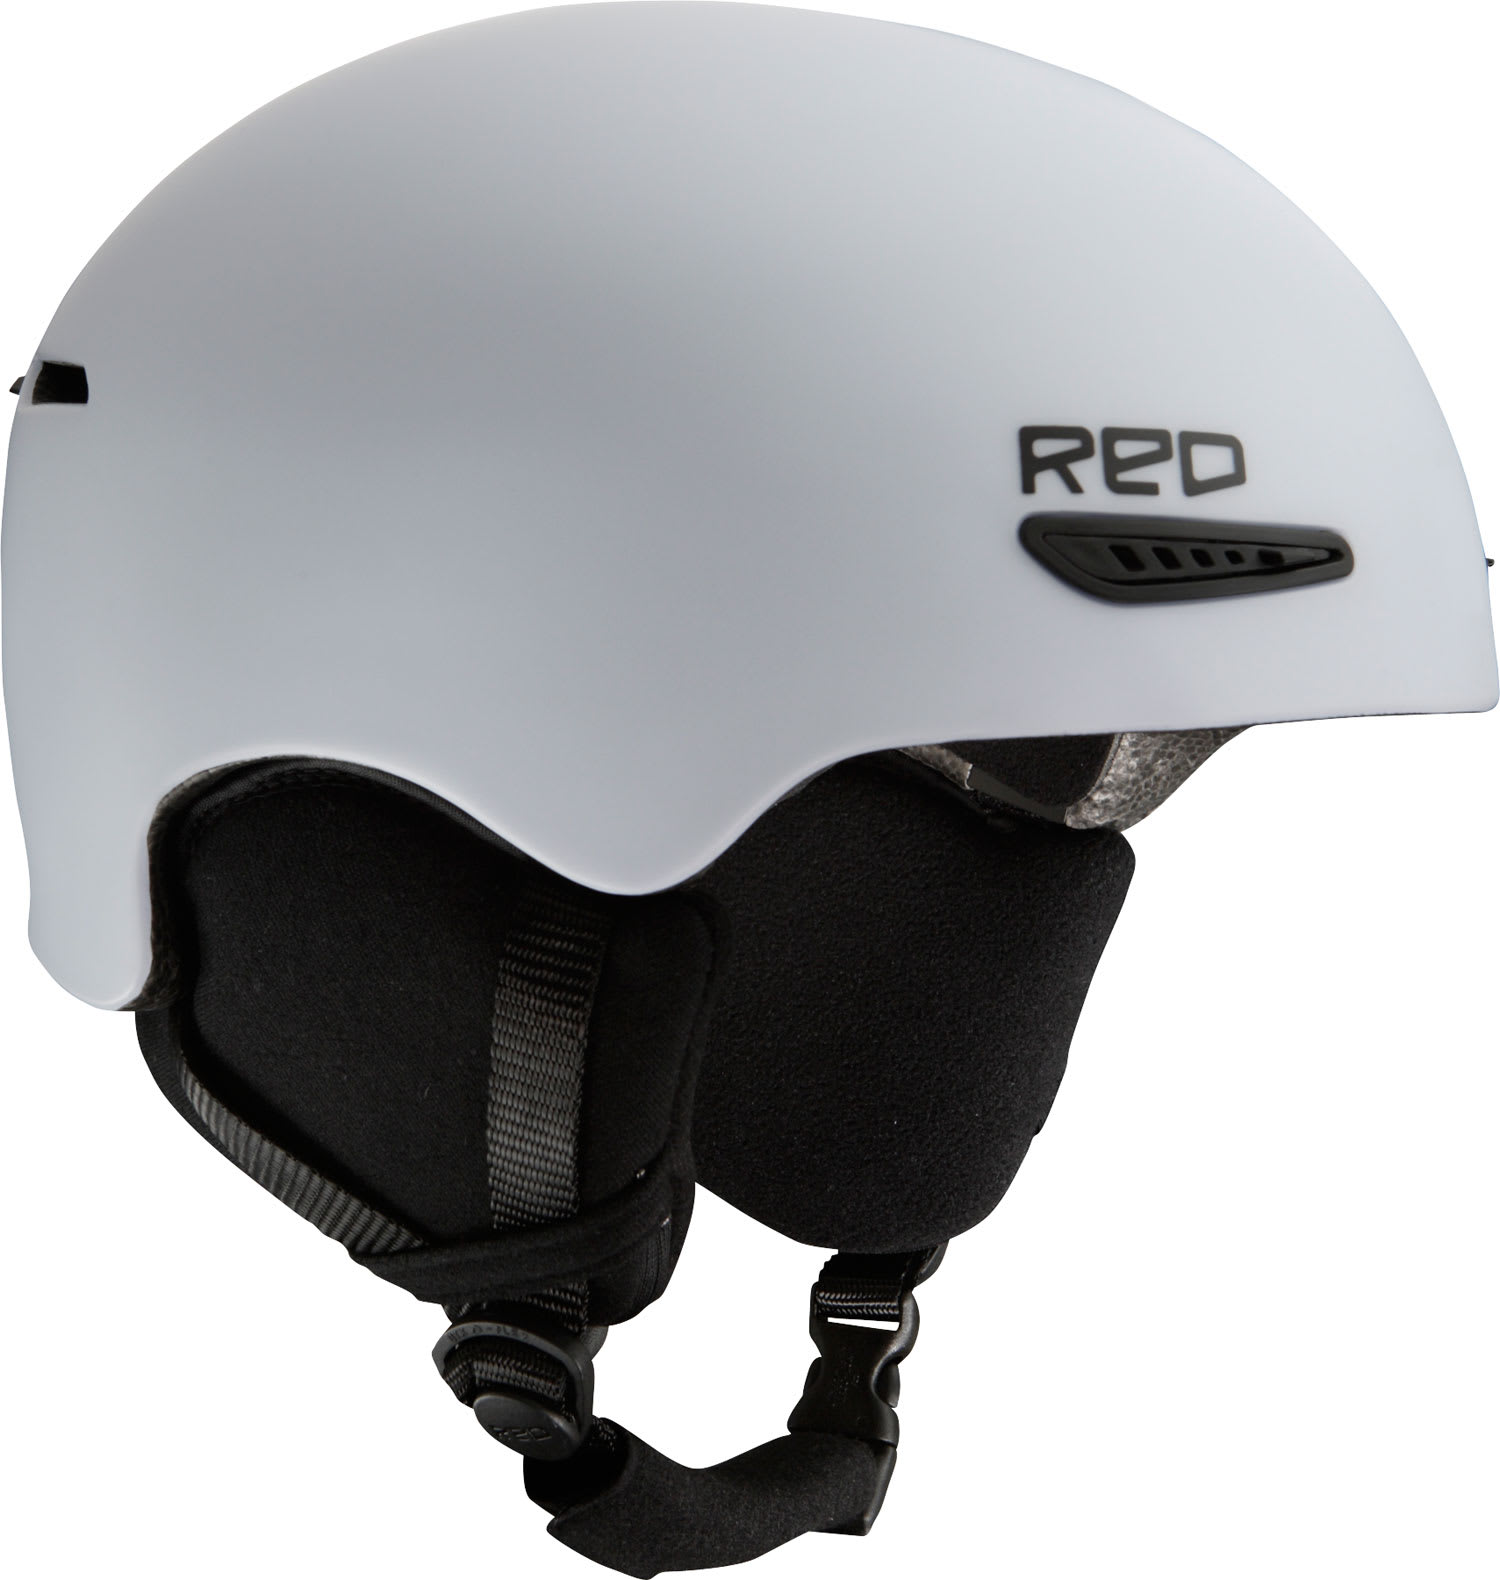 Shop for Red Avid Snowboard Helmet White - Men's